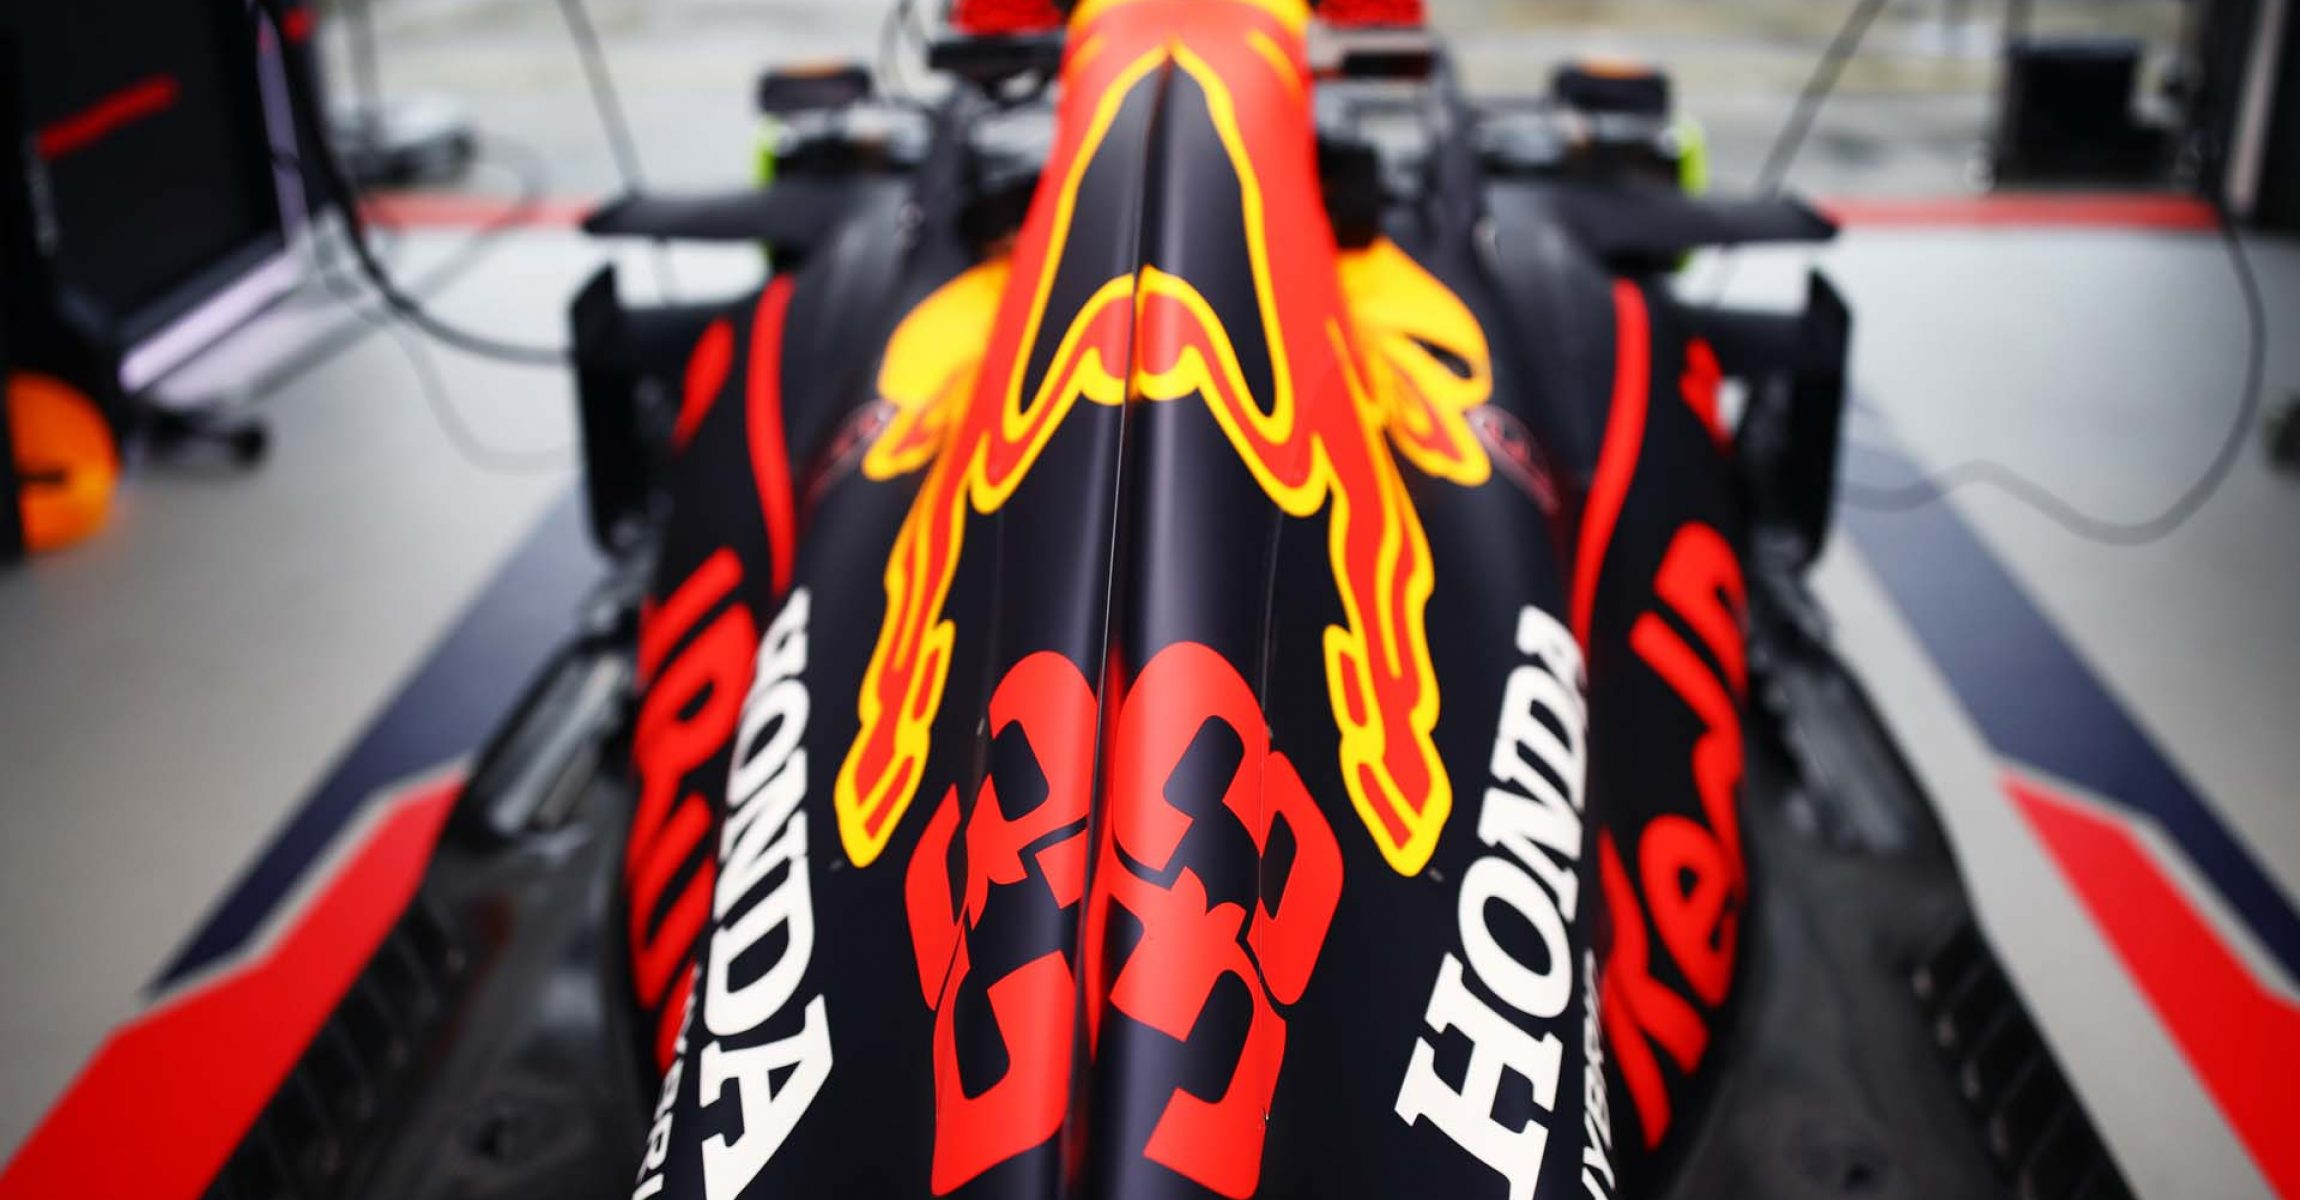 NUERBURG, GERMANY - OCTOBER 09: The car of Max Verstappen of Netherlands and Red Bull Racing is pictured in the garage during practice ahead of the F1 Eifel Grand Prix at Nuerburgring on October 09, 2020 in Nuerburg, Germany. (Photo by Mark Thompson/Getty Images)